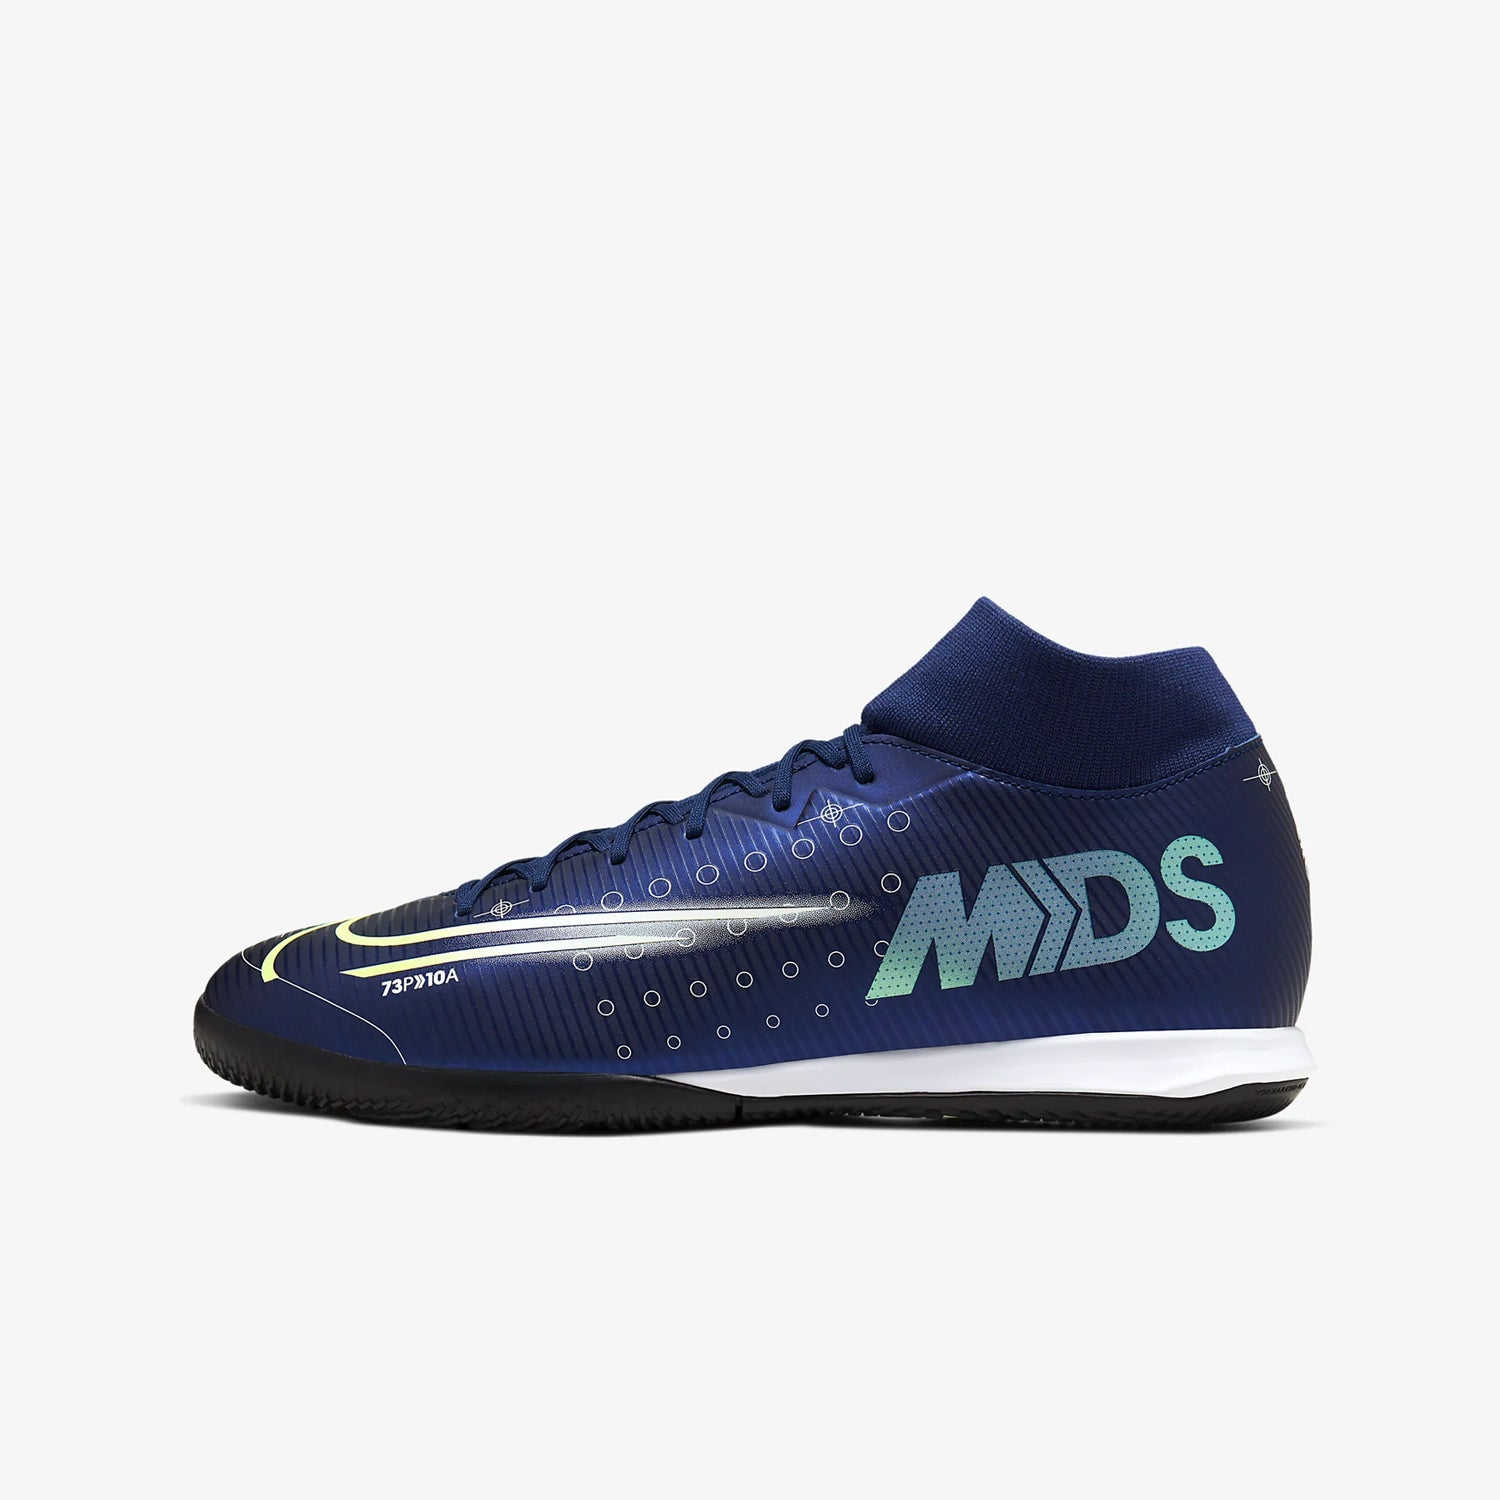 Escéptico Fruta vegetales científico  Mercurial Superfly 7 Academy MDS IC Indoor Soccer Shoes - Niky's Sports